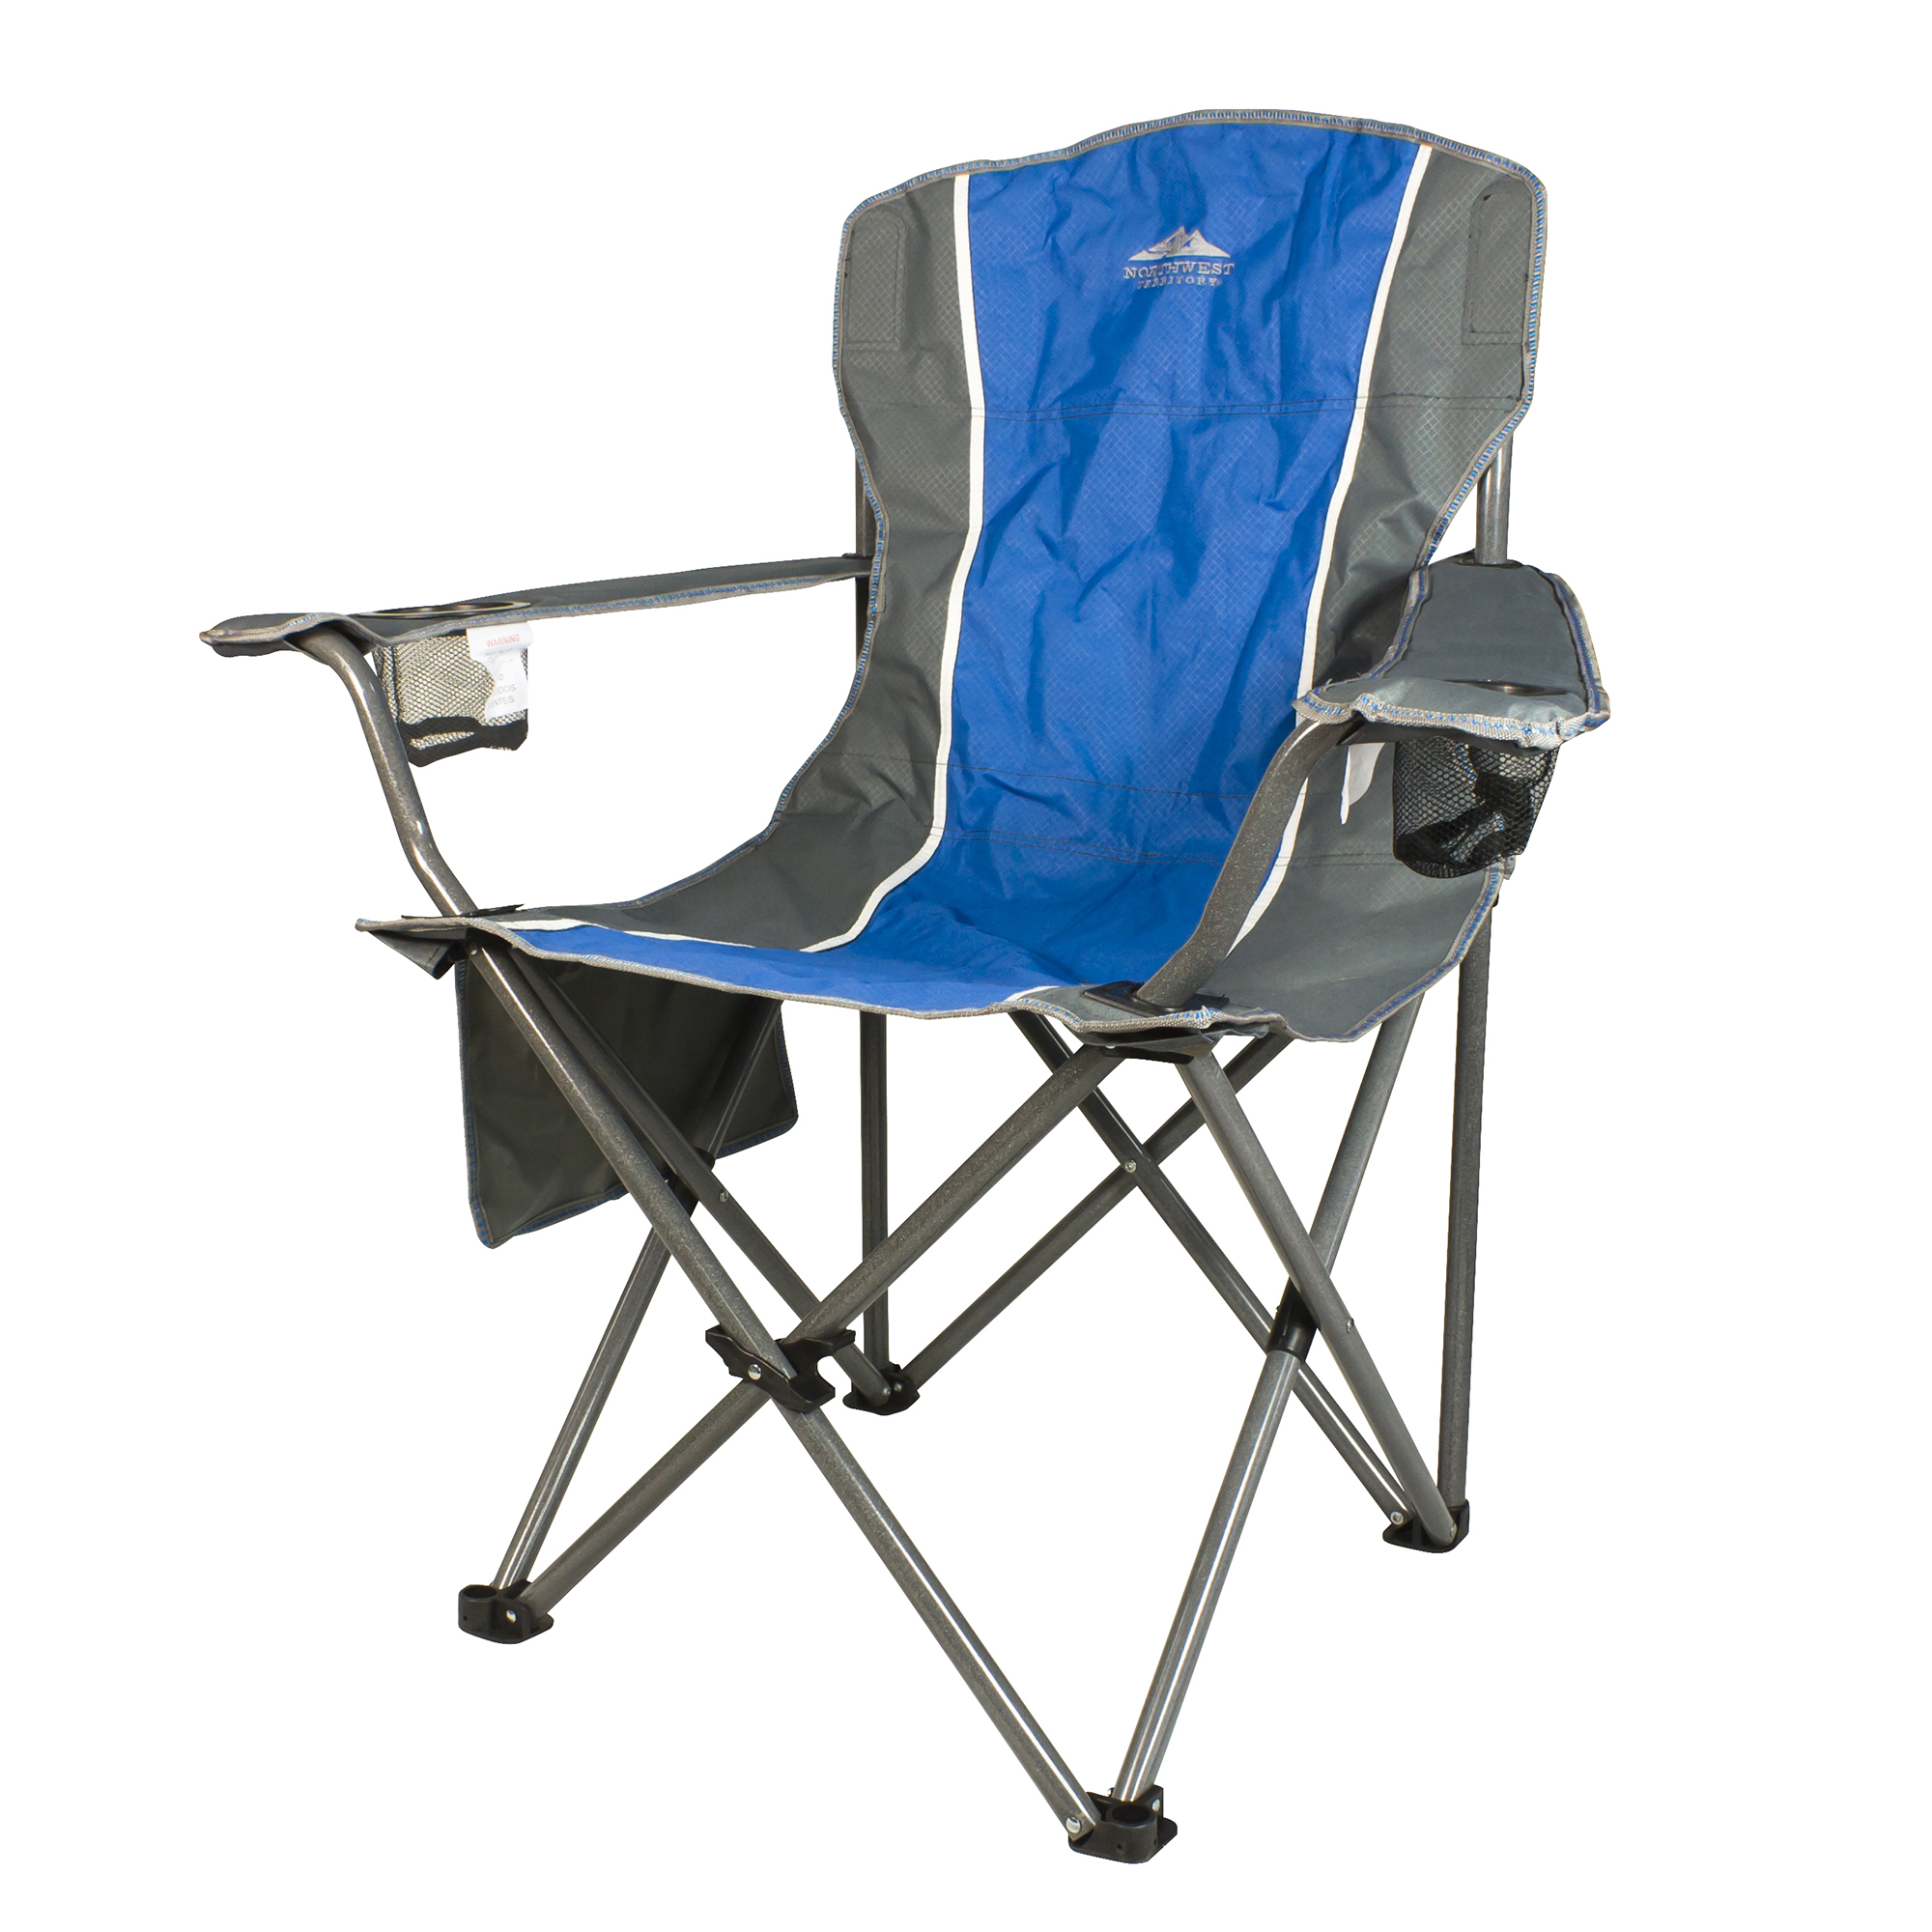 camping chairs big 5 chair swings bedroom northwest territory boy xl fitness and sports